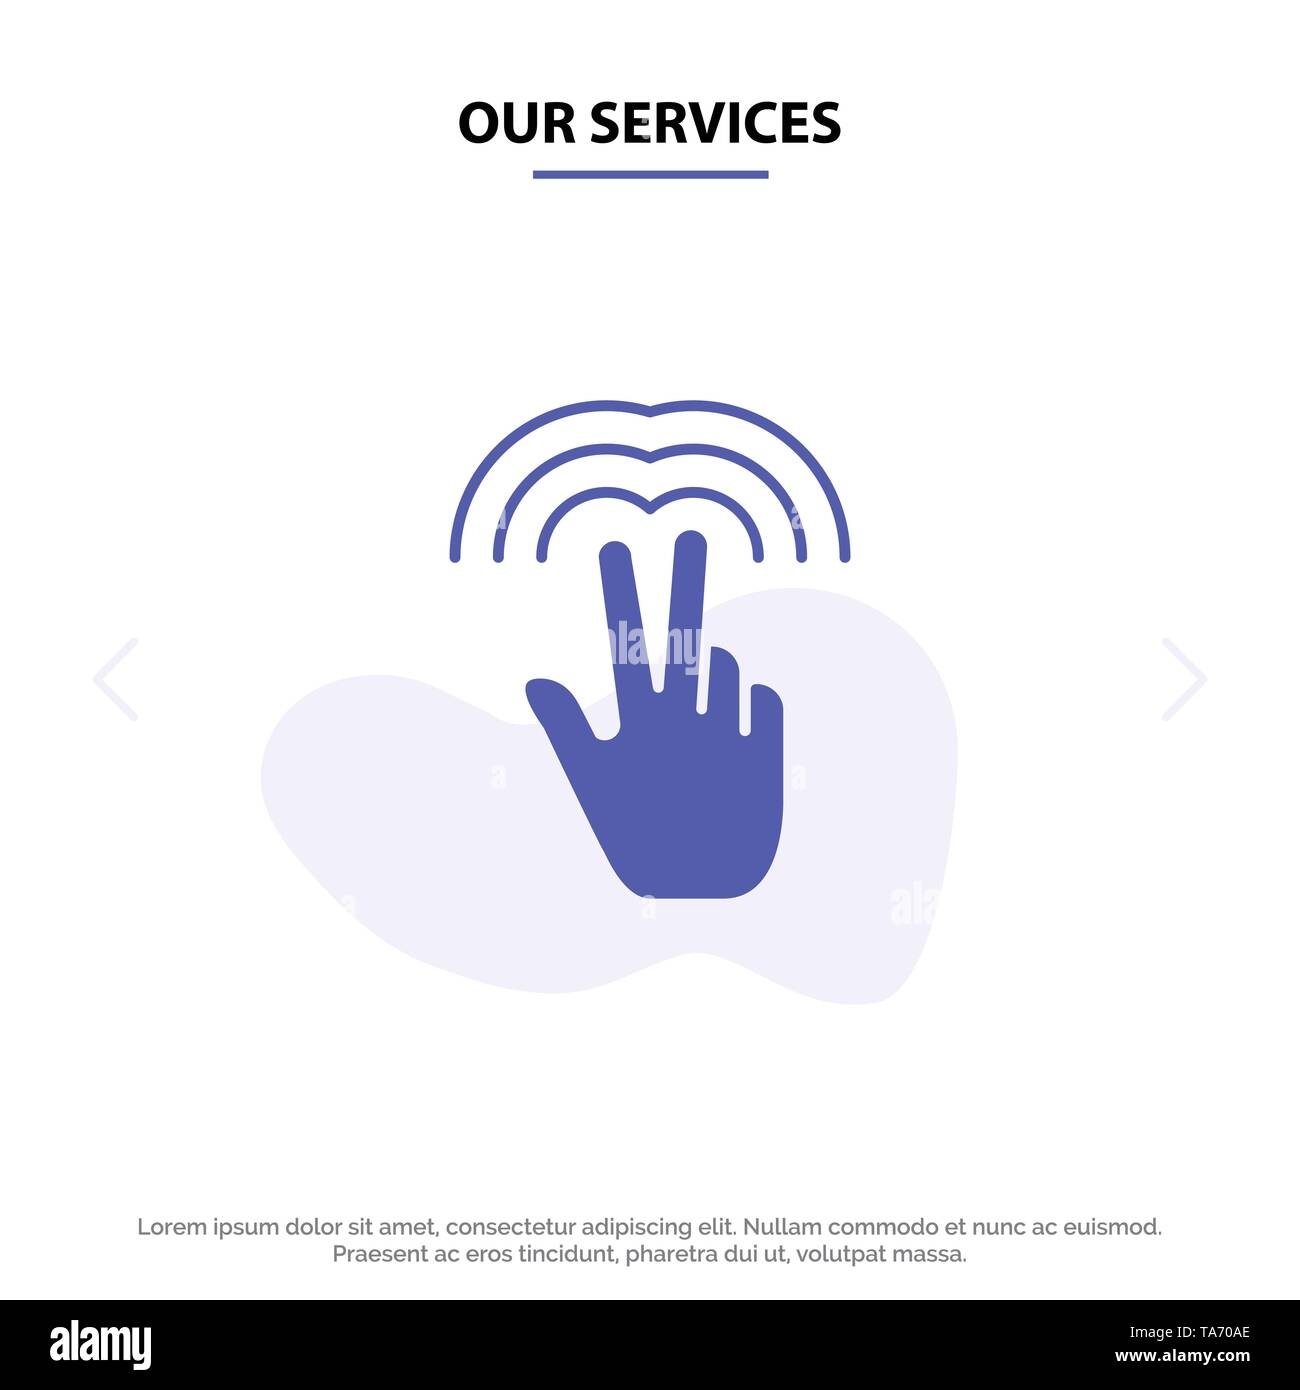 Our Services Double, Gestures, Hand, Tab Solid Glyph Icon Web card Template - Stock Image